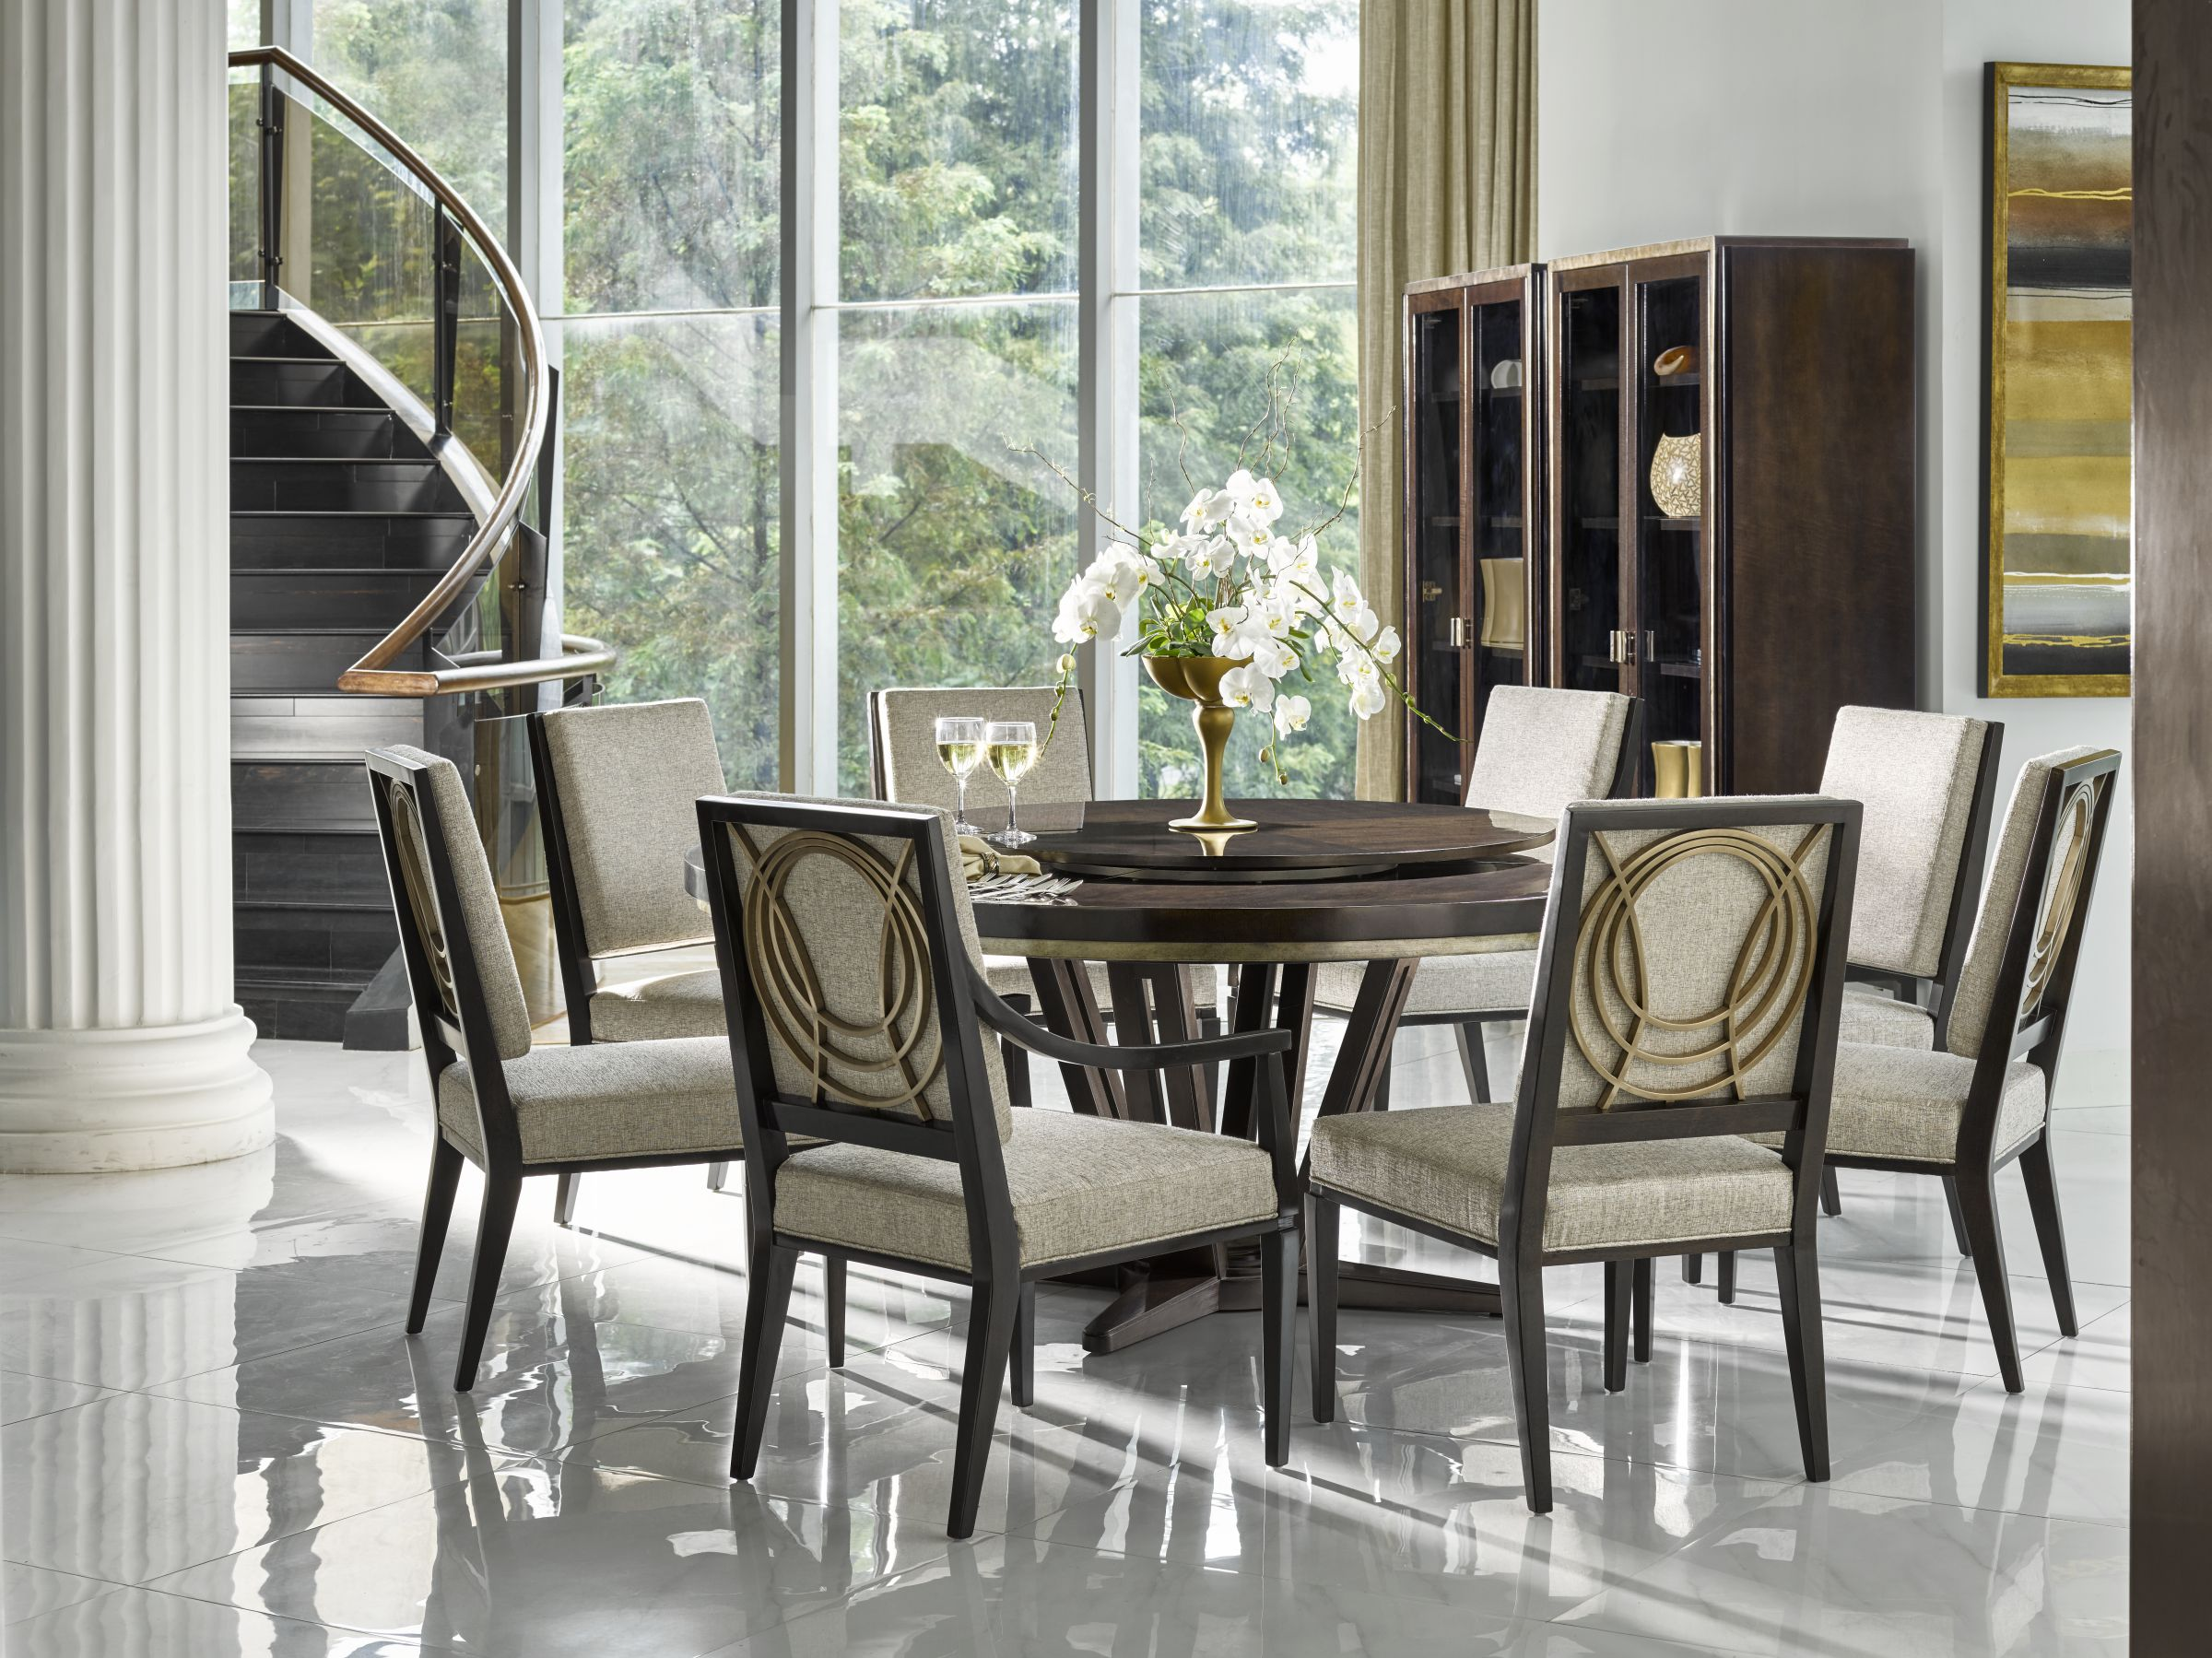 Fine Furniture Design Deco Le Cercle dining room table